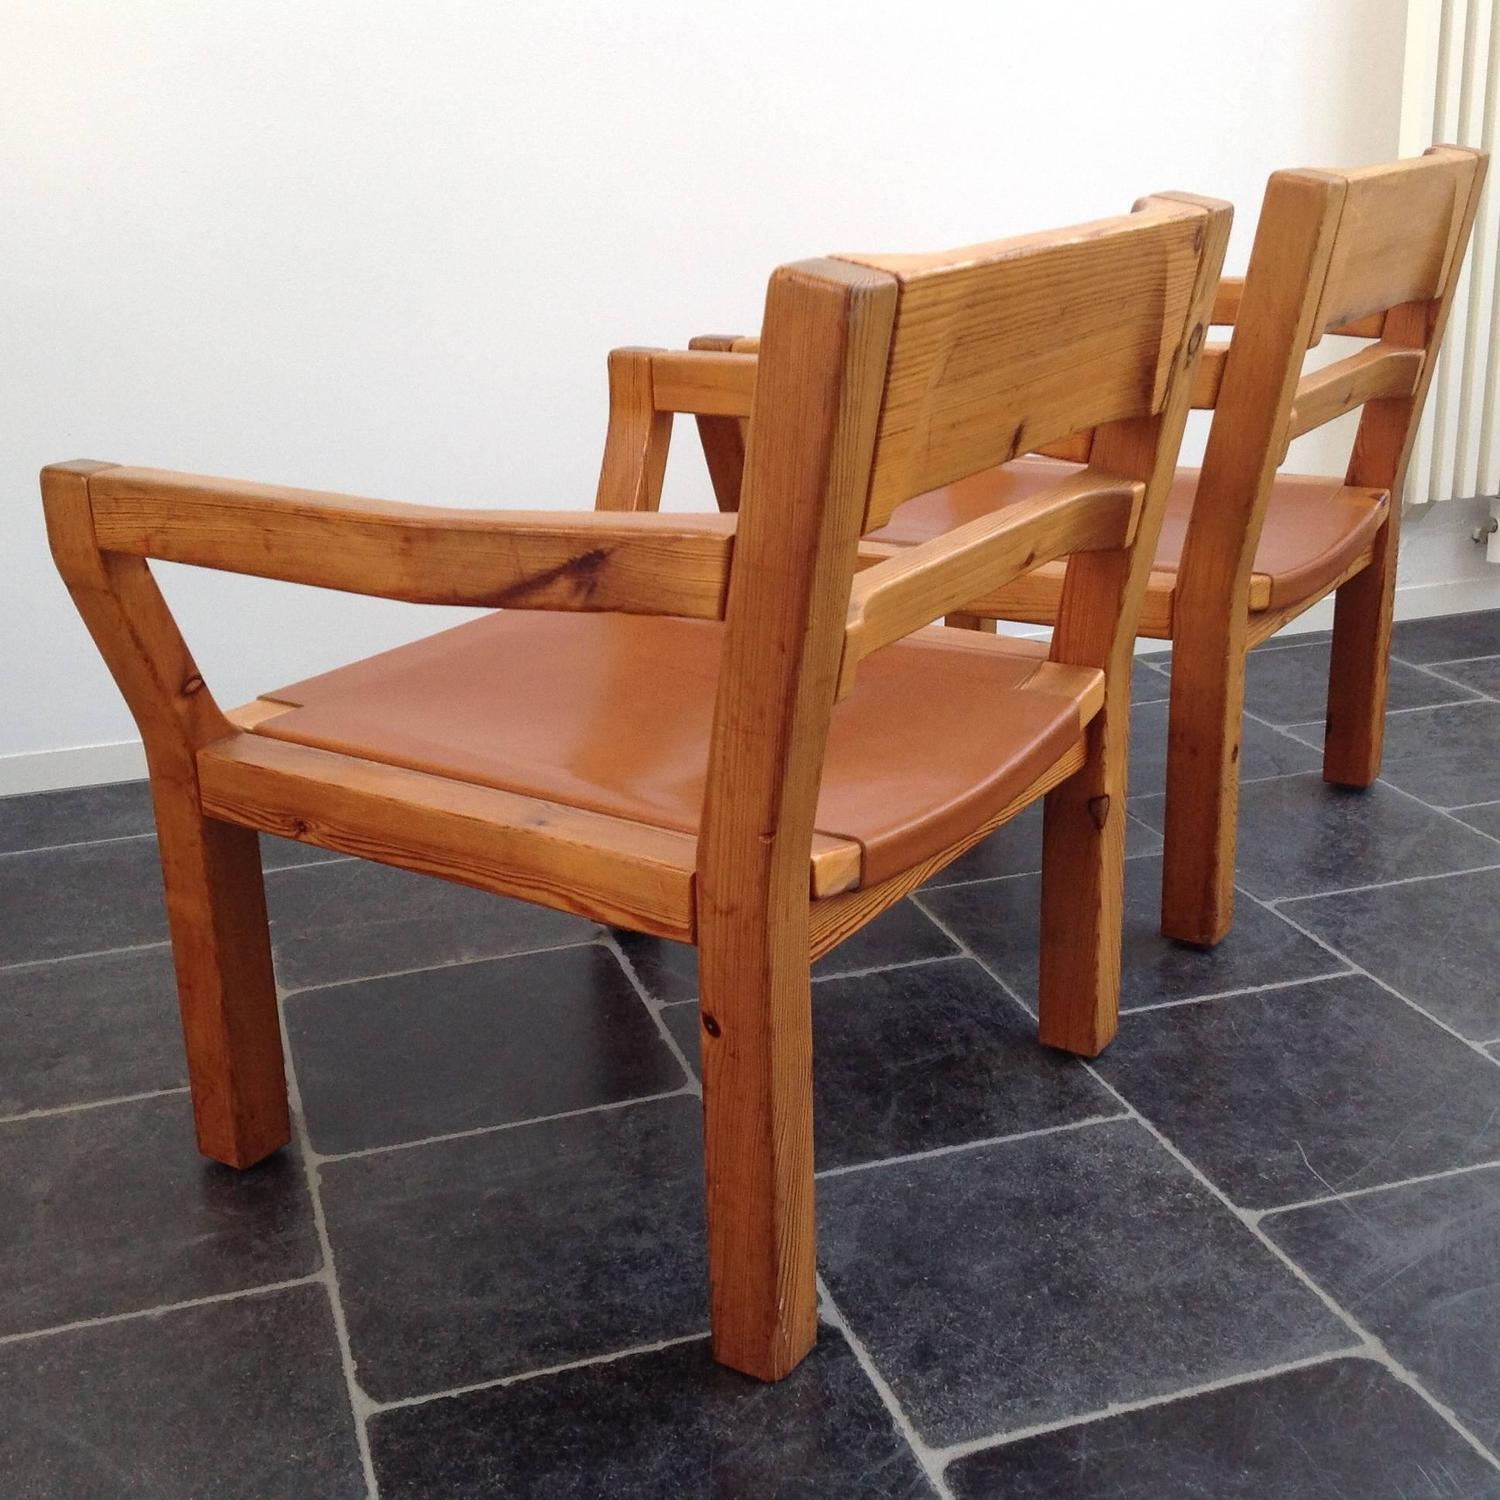 Comfortable easy chairs scandinavian pinewood and leather for Comfortable chairs for sale